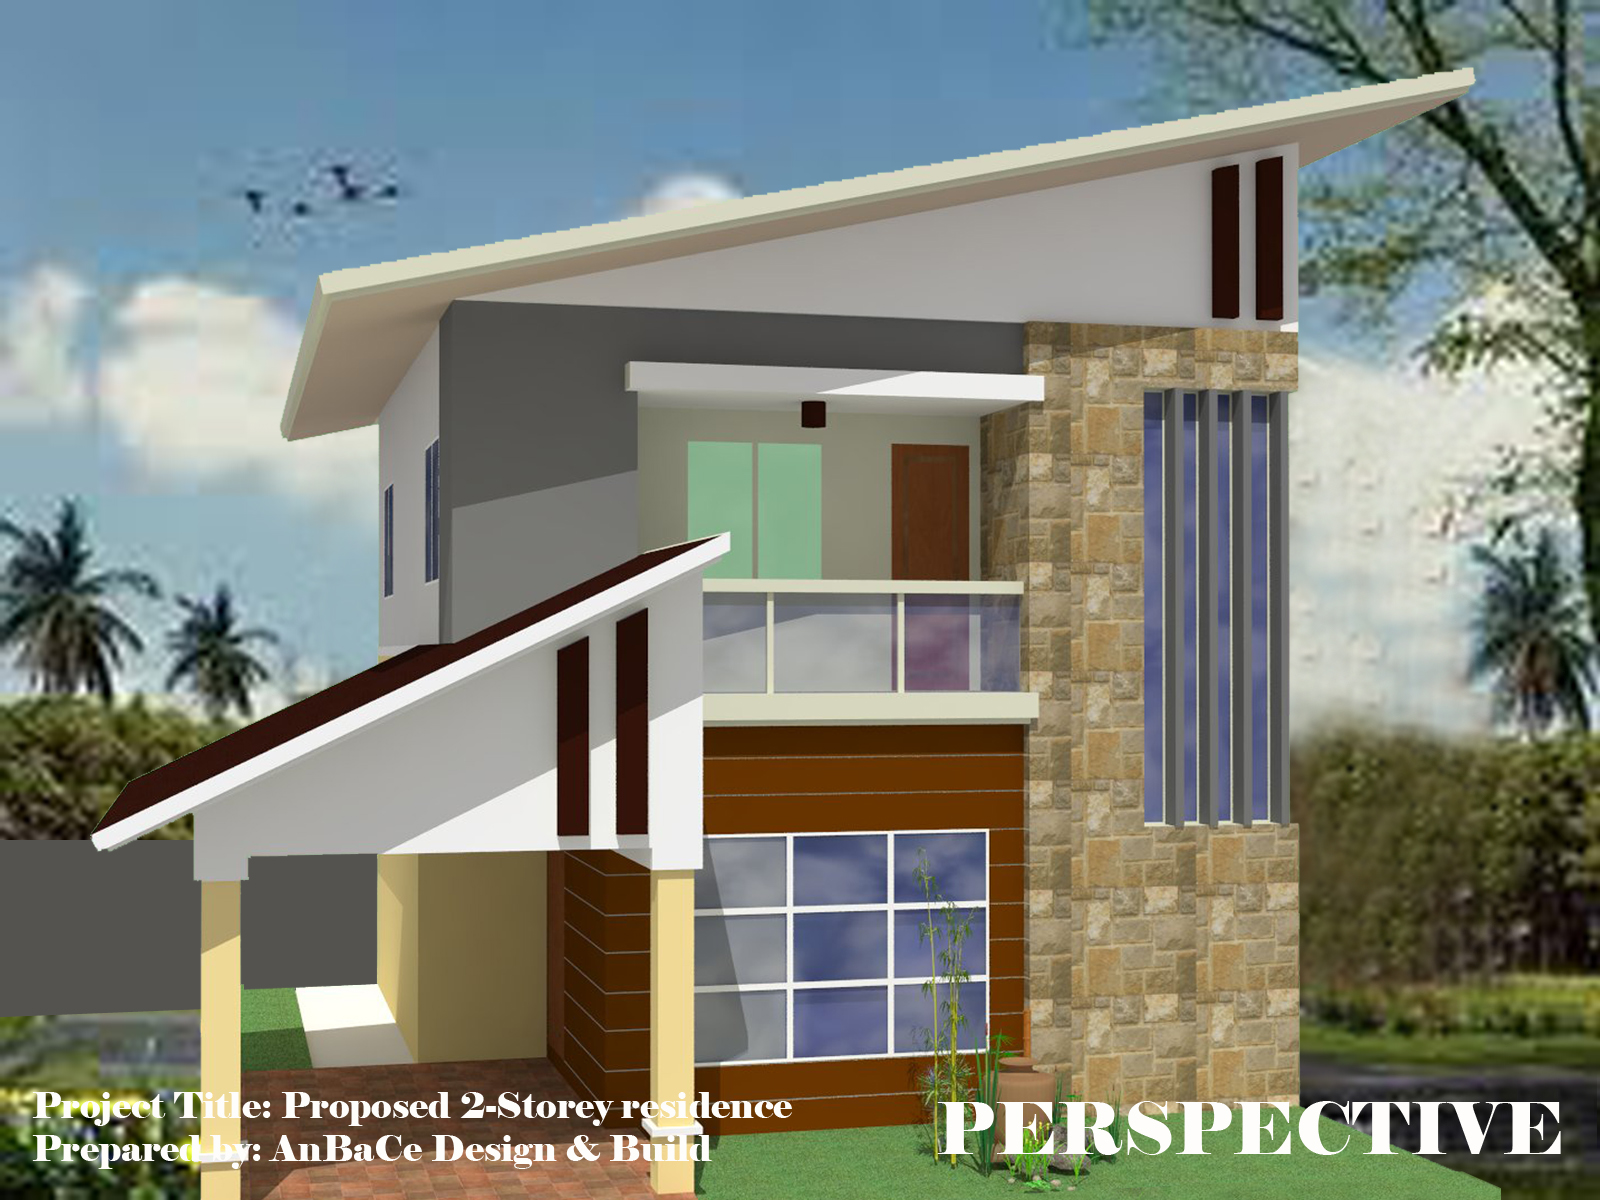 House Perspective Design on house color design, house structure design, house elevation design, house sketch design, house architecture design, house colour design, house art design, house lighting design, house framing design, house light design, modern house design, house truss design, house plot design, house plan design, house drawing design, house blueprint design, house landscape design, house painting design, house front design, house outline design,